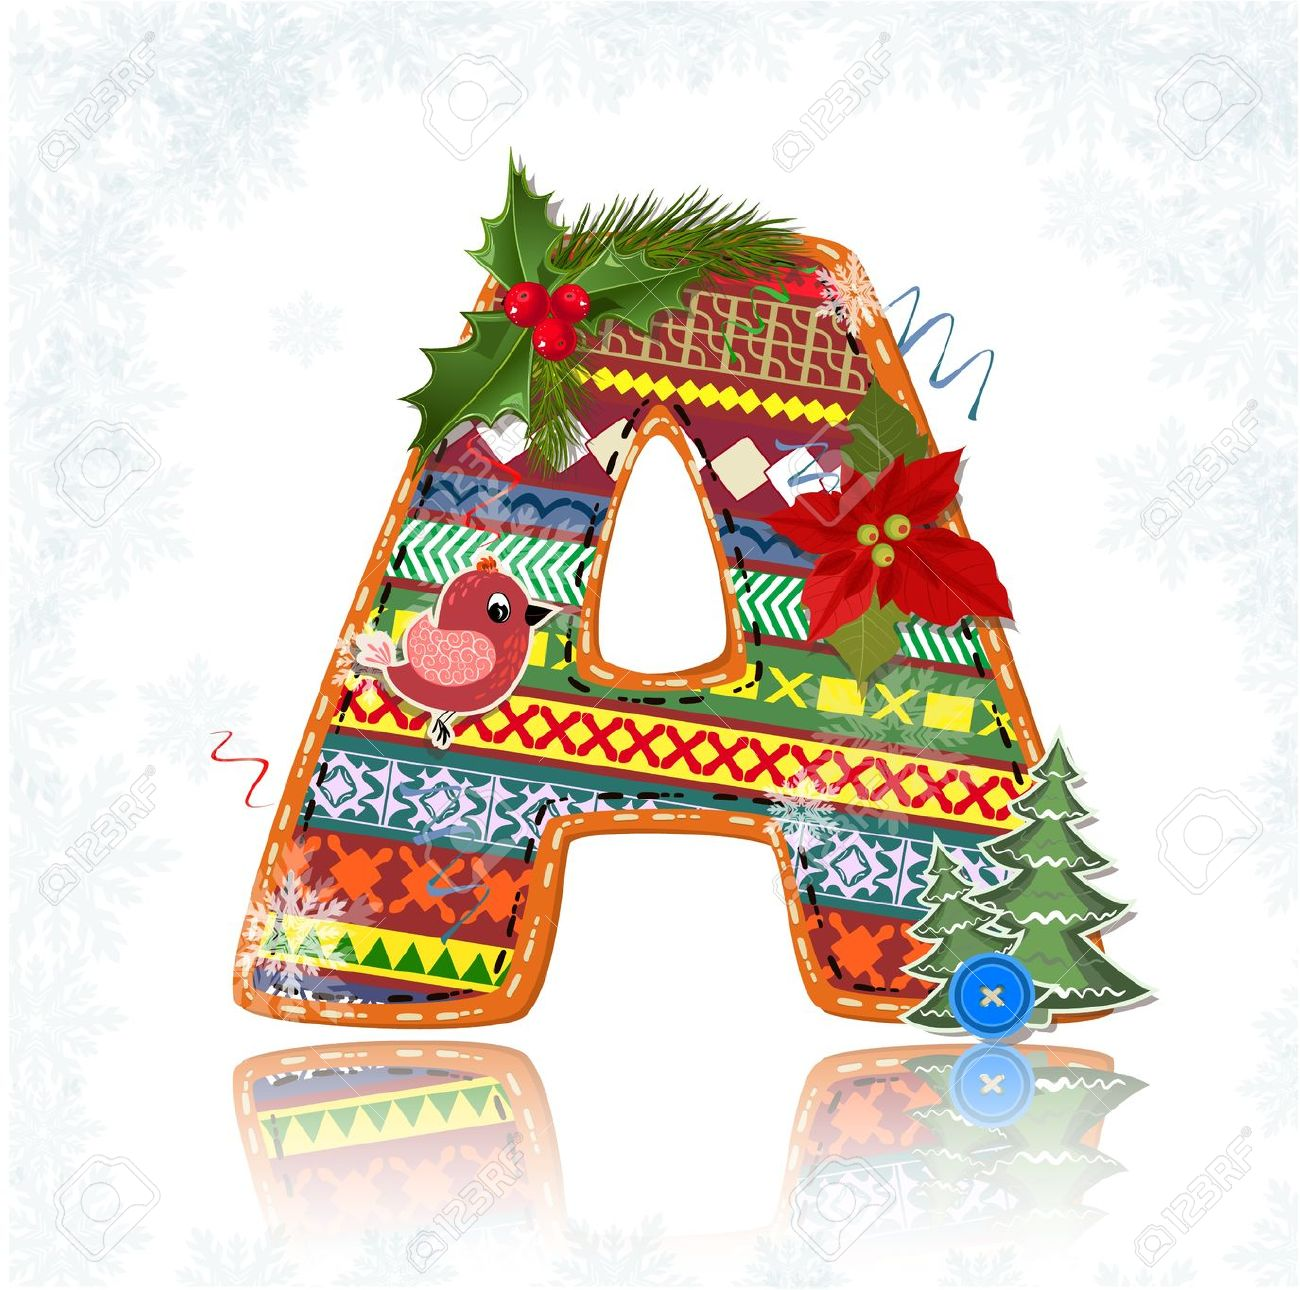 Free Christmas Cliparts Letters, Download Free Clip Art, Free Clip.